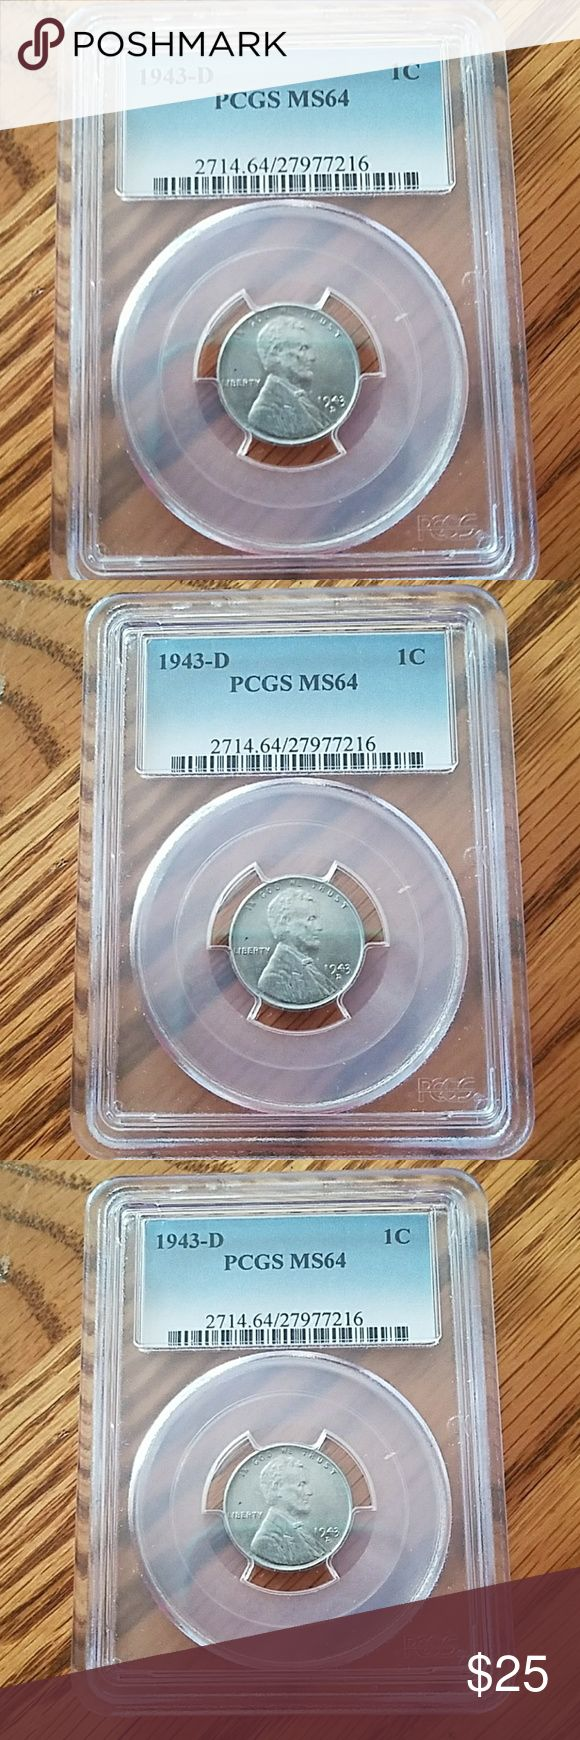 1943- D COIN Graded Other